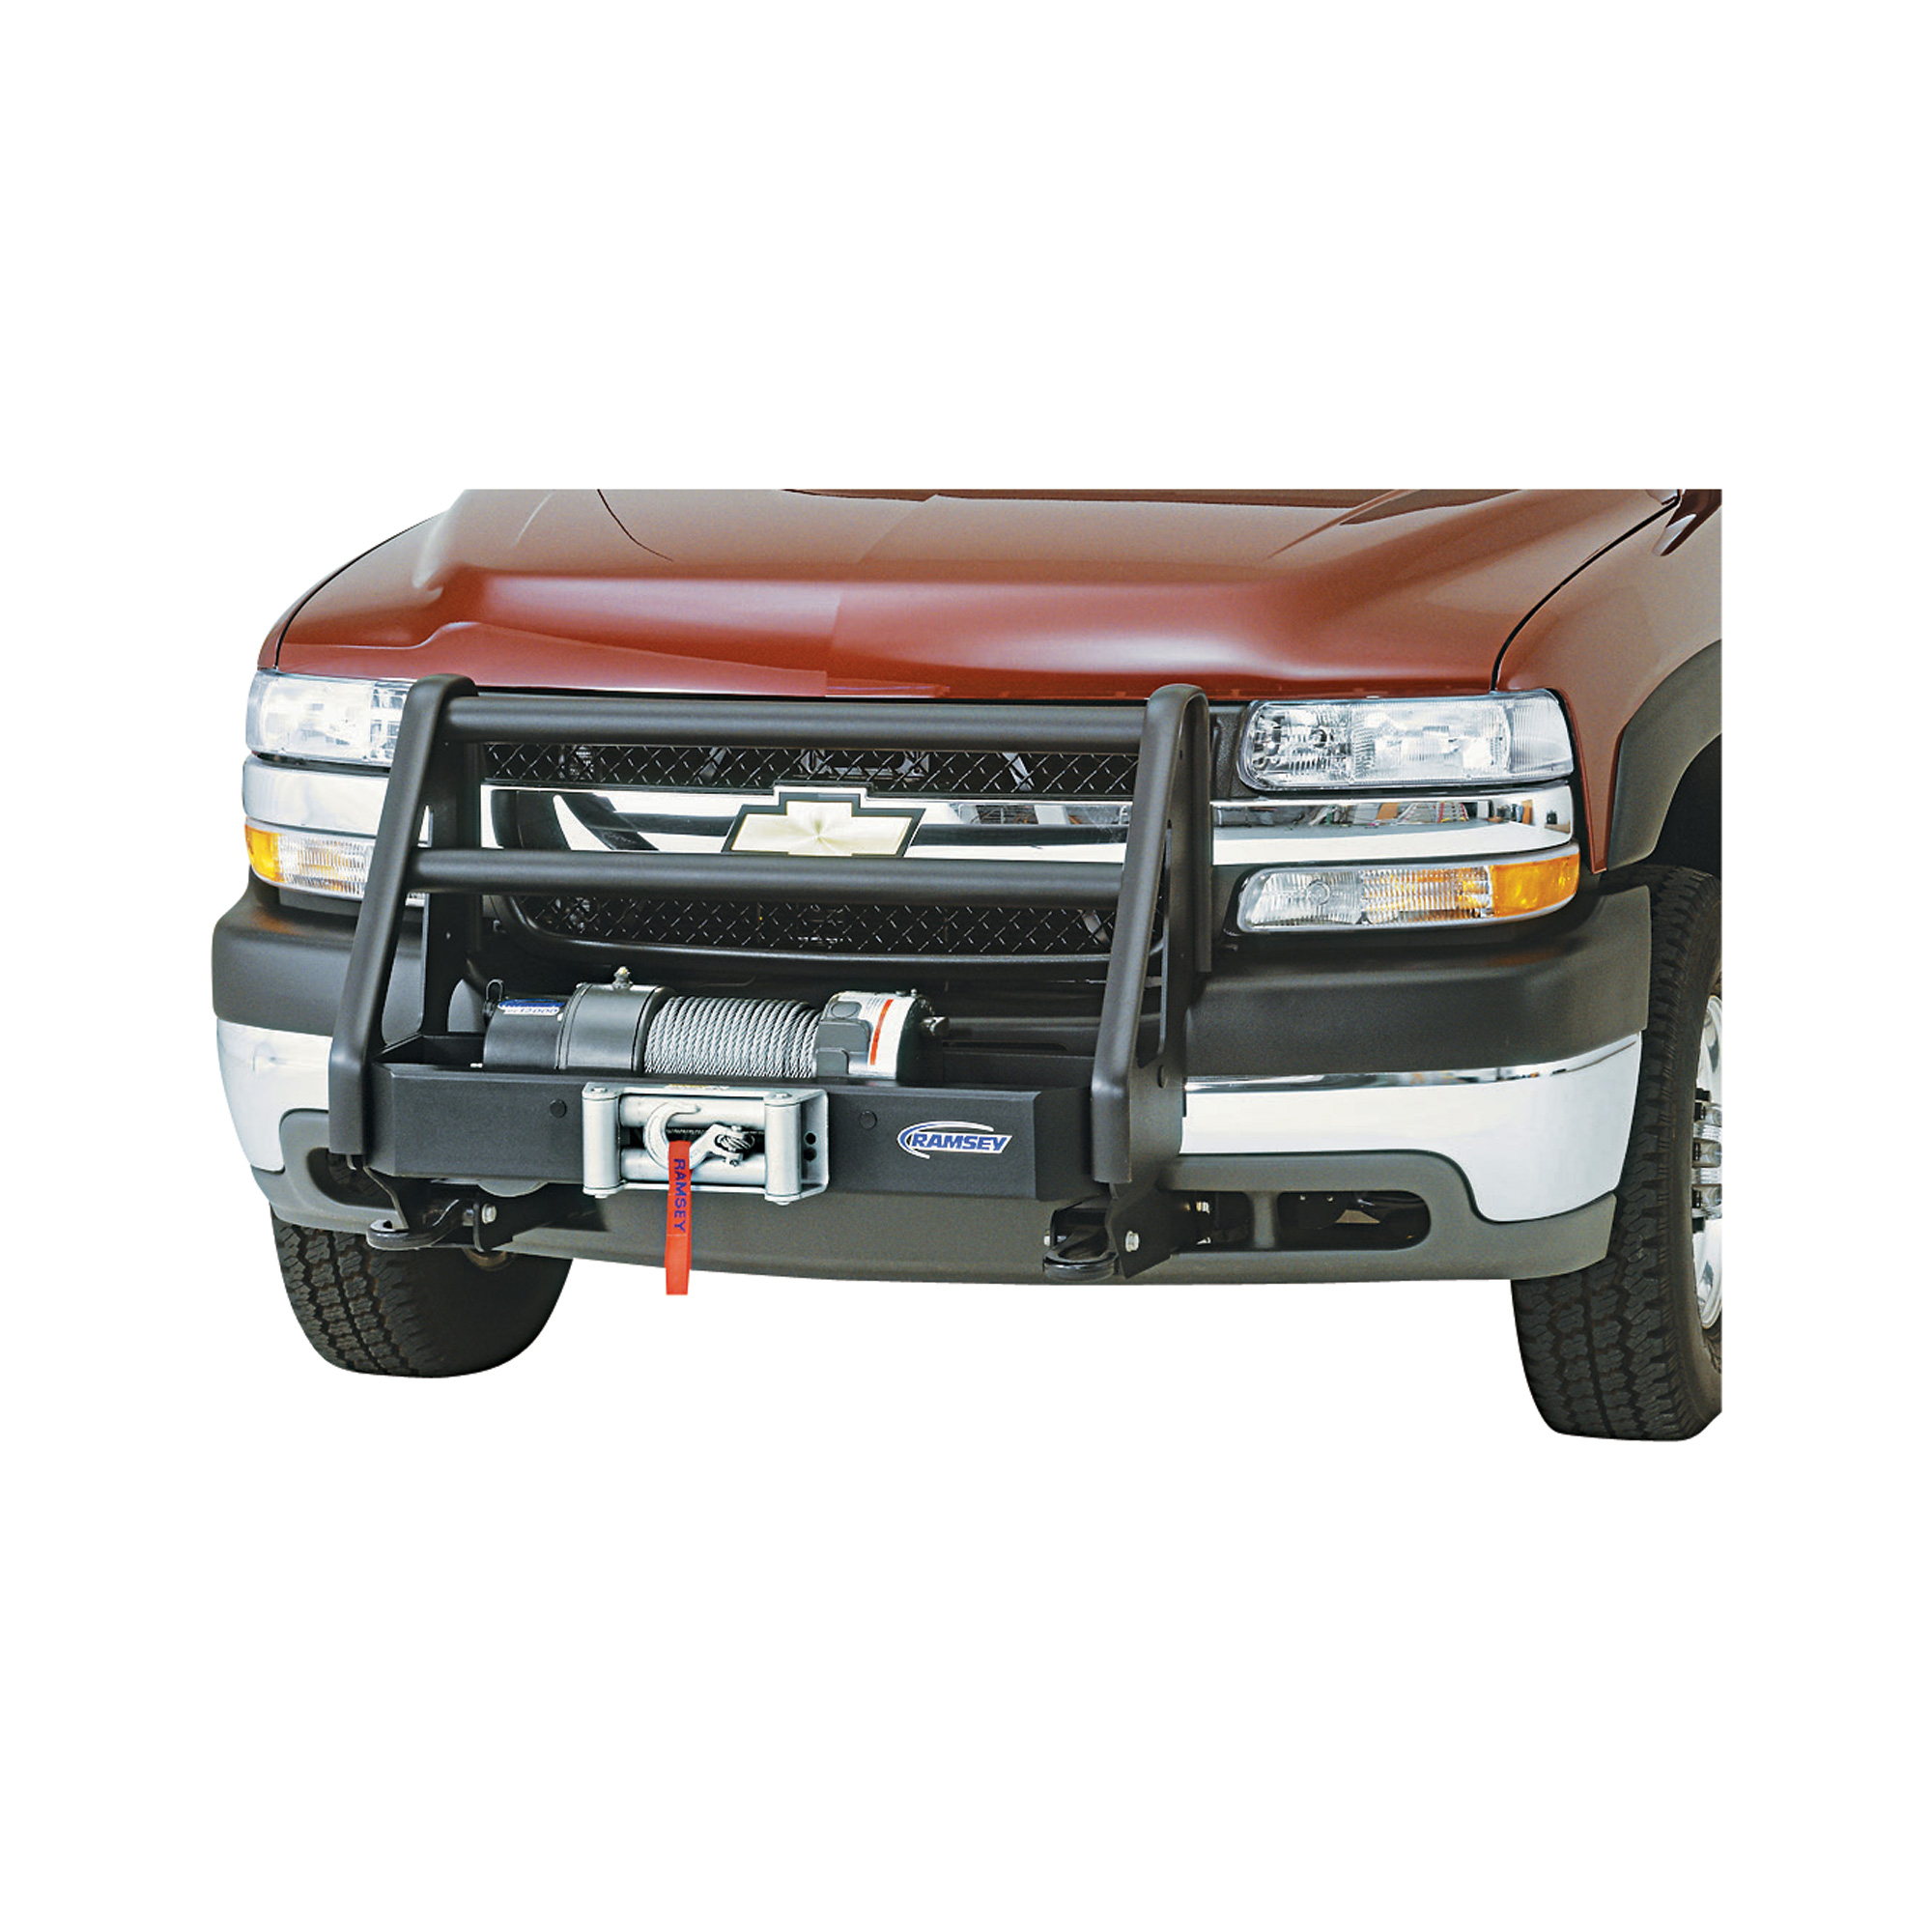 322382439517 further Replace Inner Steering Tie Rod Linkage 00 07 Chevy Silverado Gmc Sierra 0146891 likewise Ranch Hand Legend Grille Guard as well 231006567664 as well 557953841312631494. on 2003 gmc sierra grille